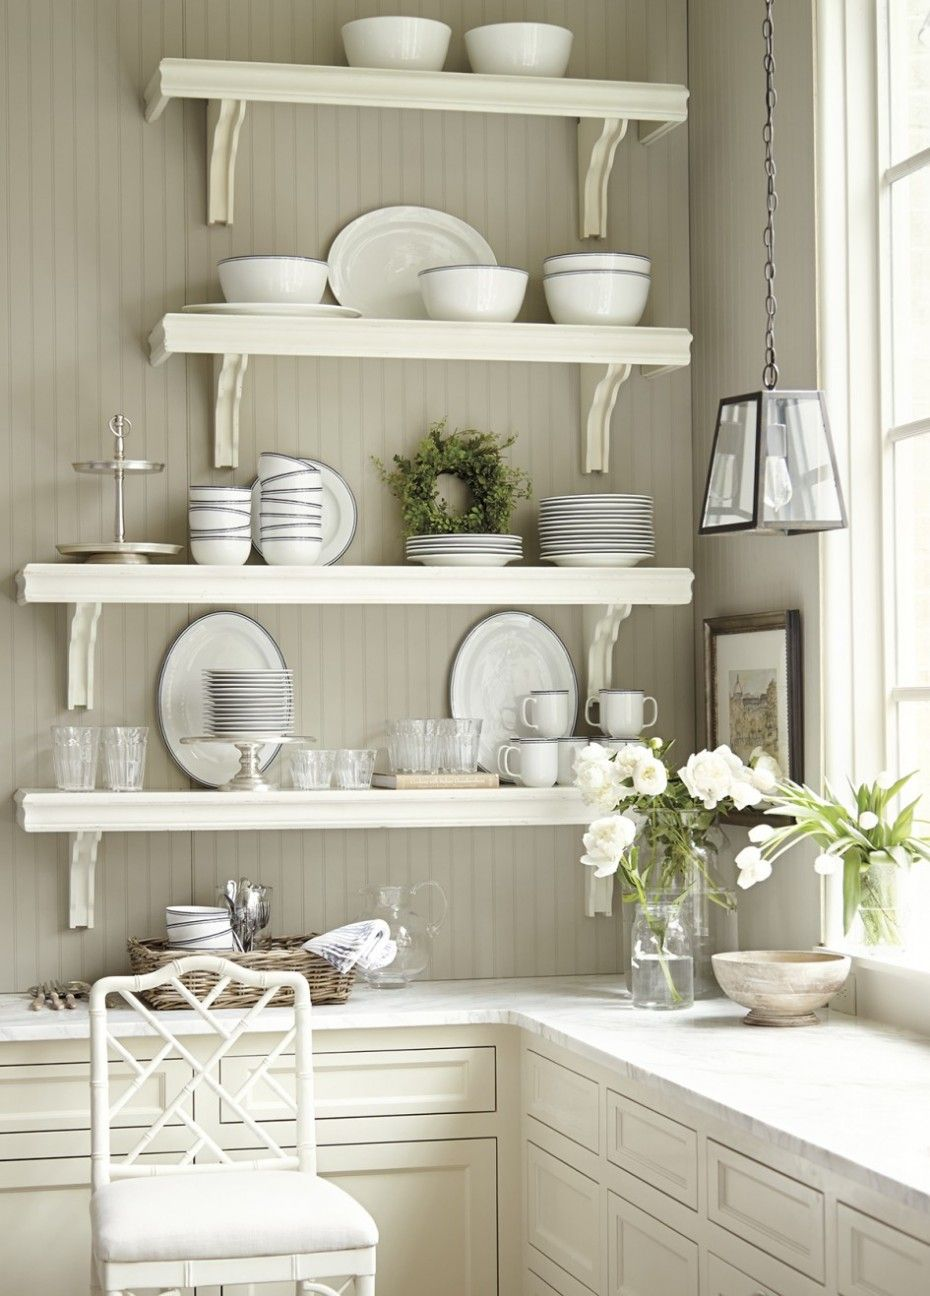 Decoration Ideas Remarkable White Wood Open Kitchen Shelving Large on decorative shelf ideas, decorative corner shelving ideas, decorative wall shelves for kitchens, decorative kitchen cabinets, decorative furniture ideas, decorative kitchen storage,